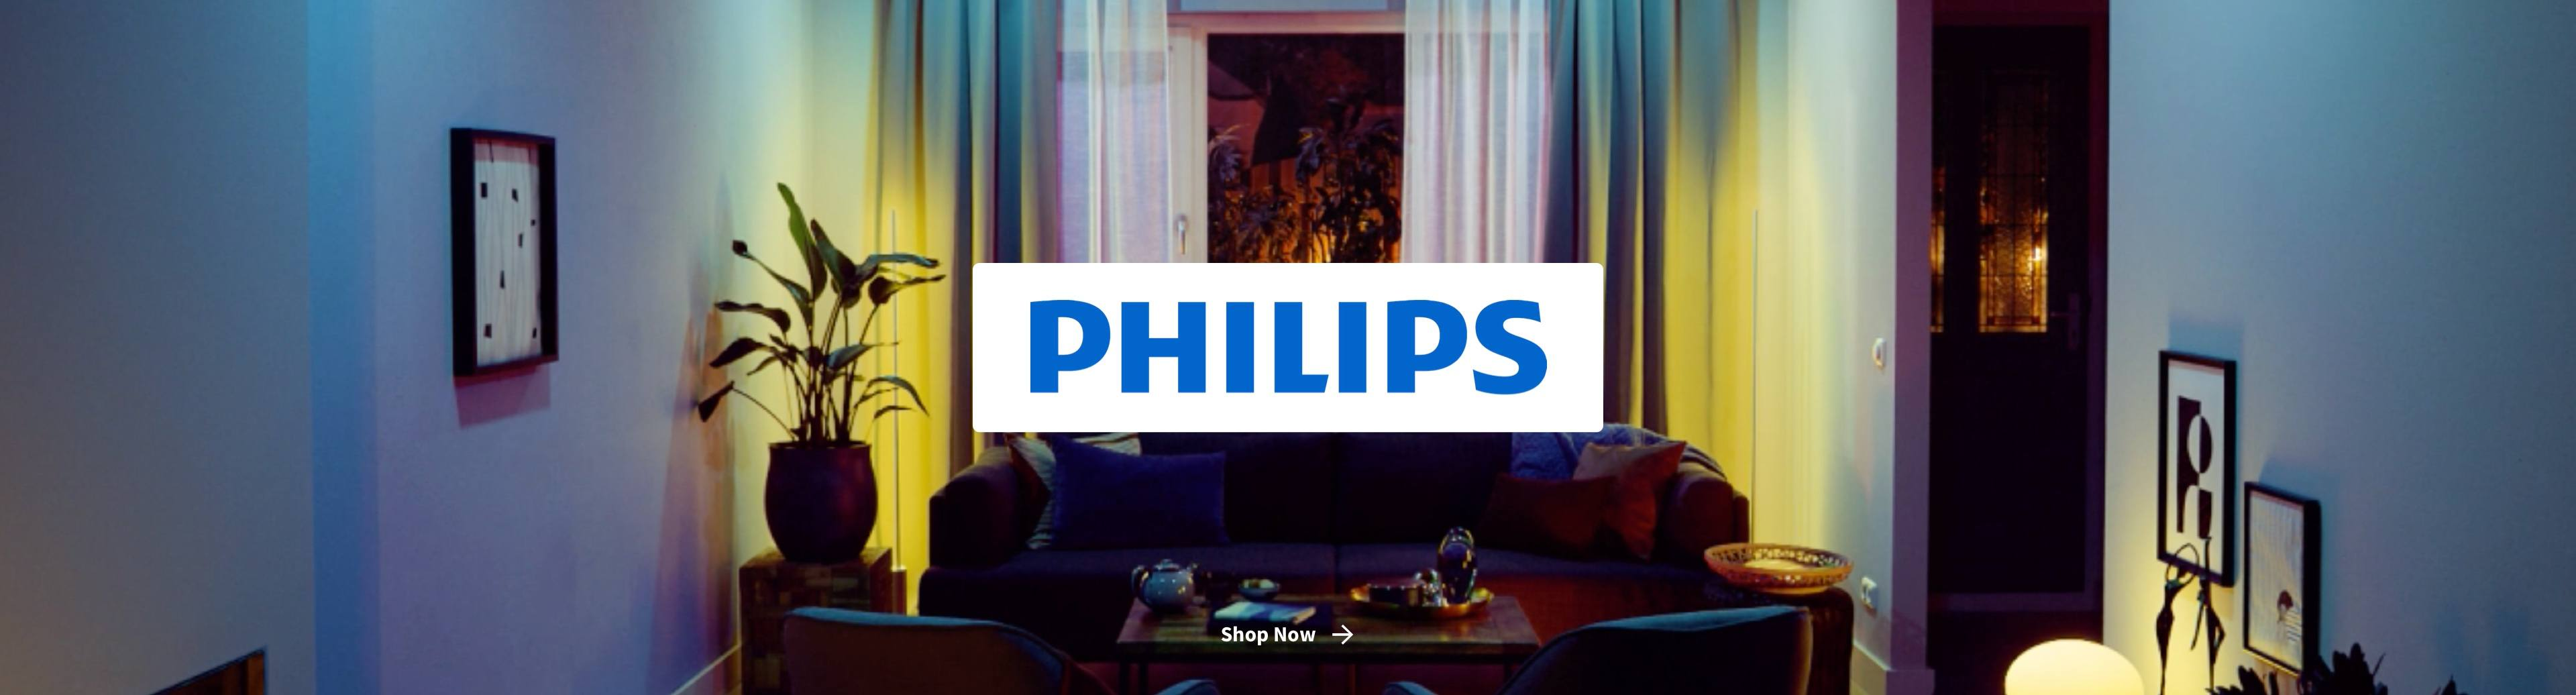 Philips Hue Lighting in living room